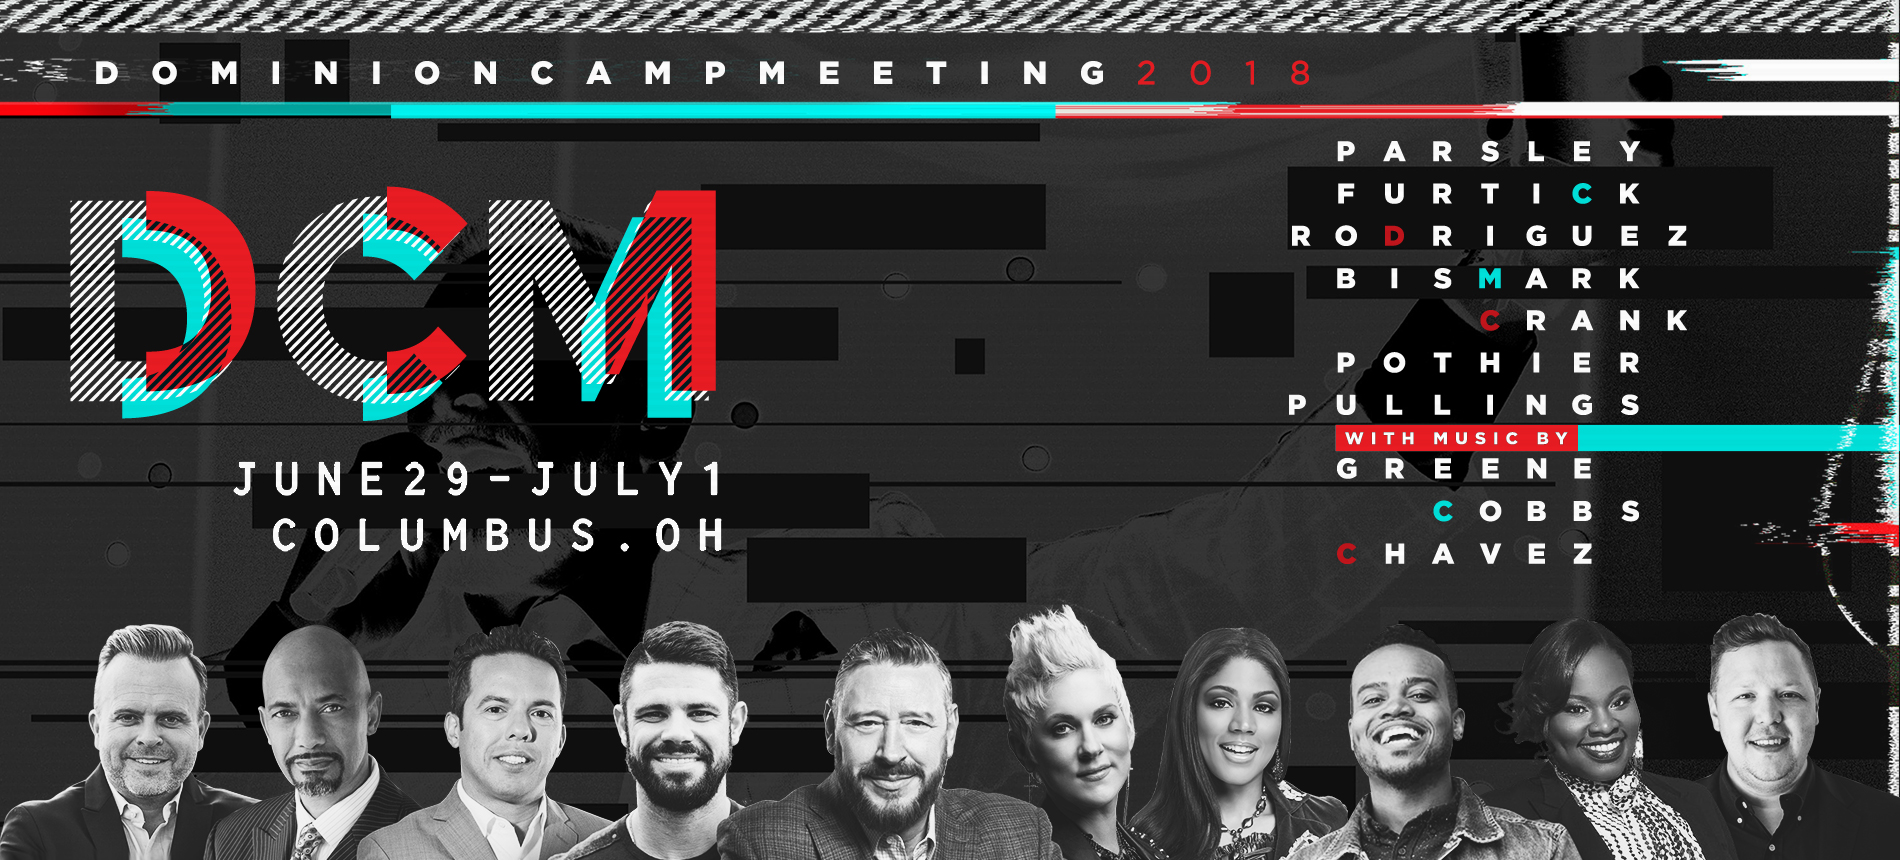 WHCE | Dominion Camp Meeting 2018 microsite